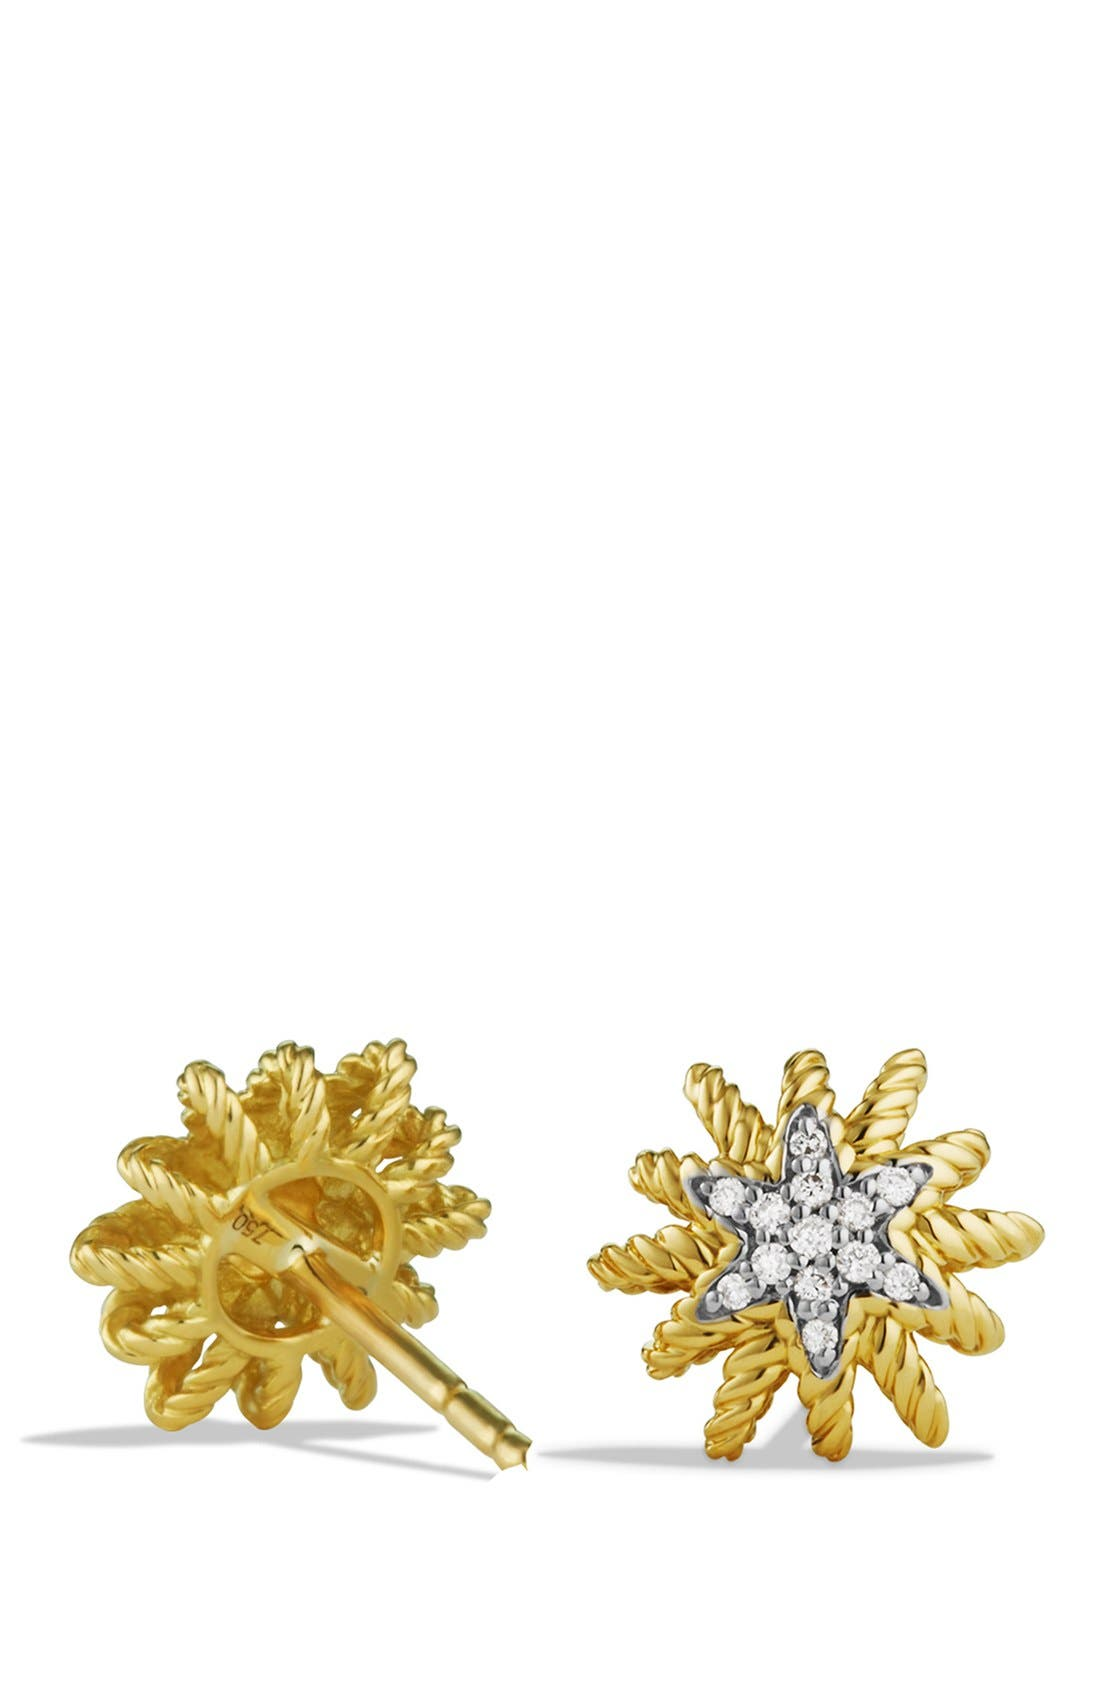 'Starburst' Mini Earrings with Diamonds in Gold,                             Alternate thumbnail 2, color,                             Yellow Gold